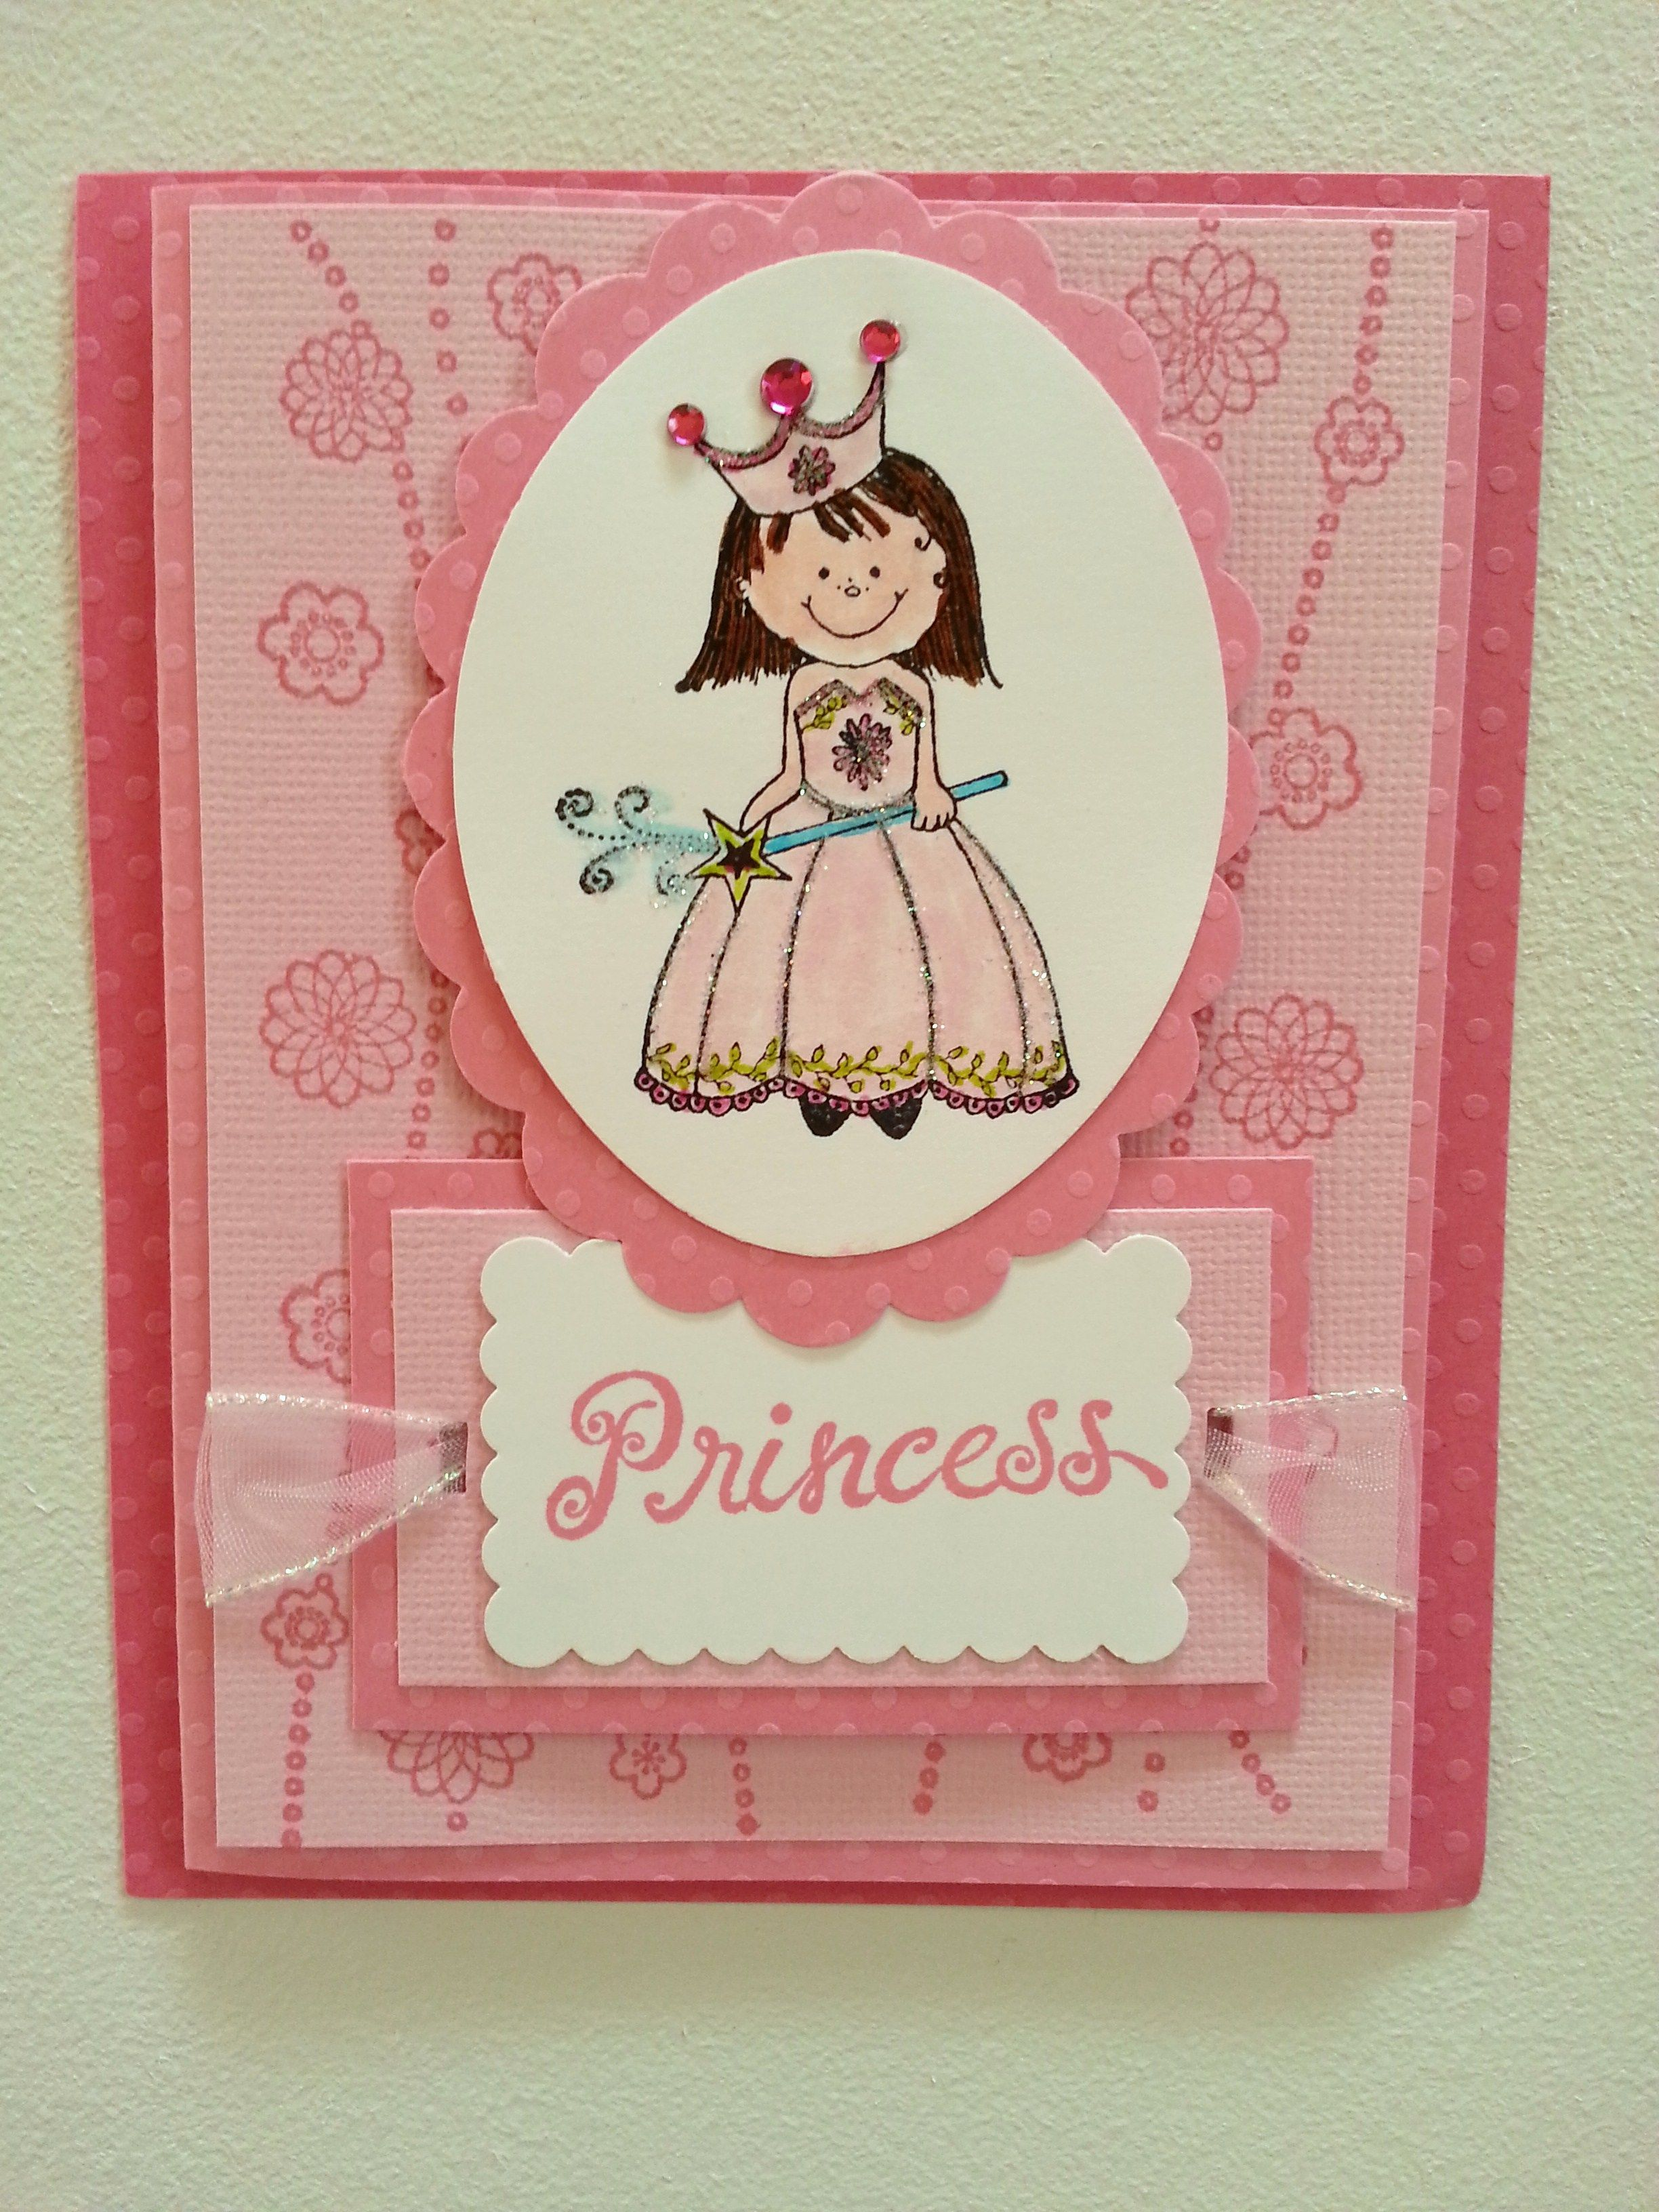 5 1 2 X 4 Handmade Birthday Card For Little Girl Princess Stamped And Decorated With Ribbon Bling Glitter Inside Message Dreams Are Wishes Of